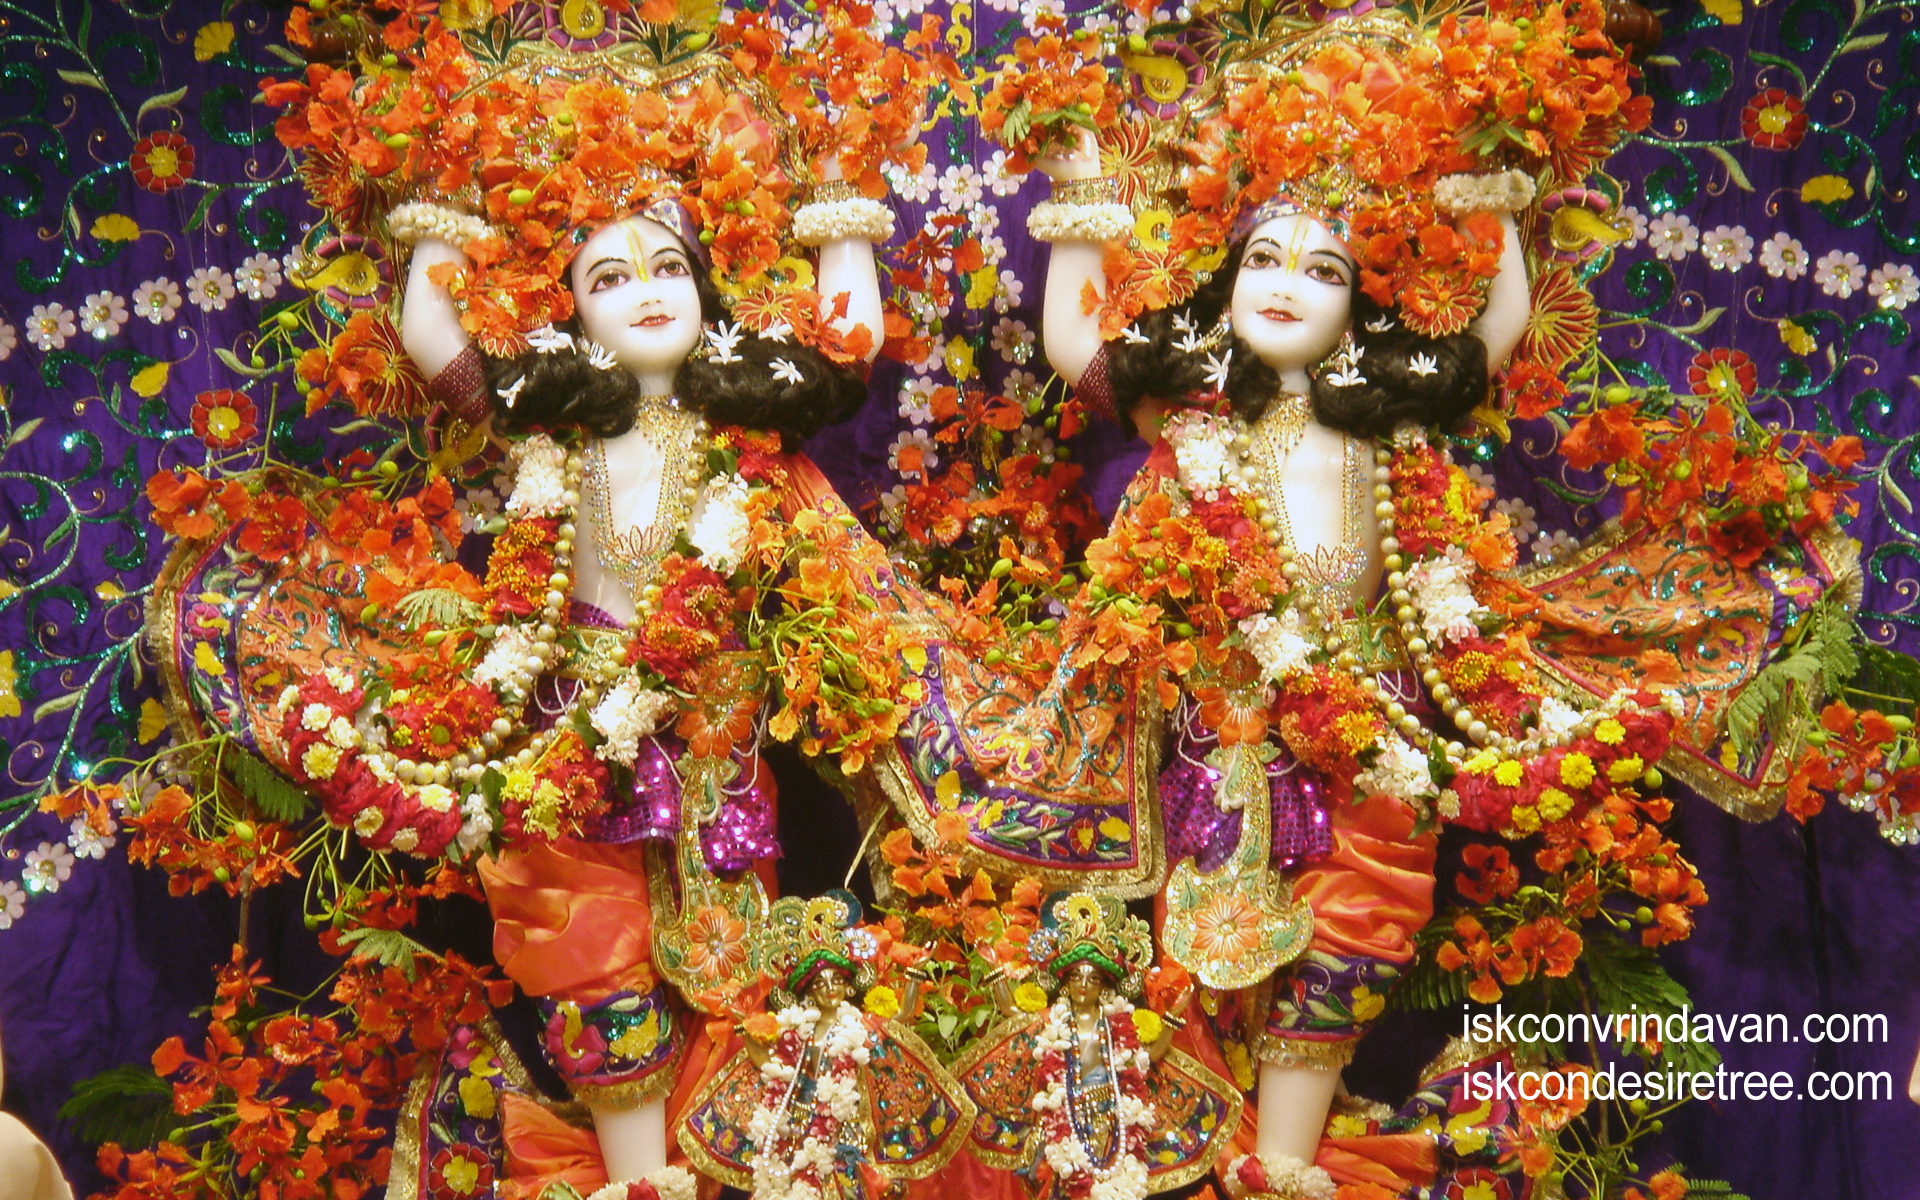 Sri Sri Gaura Nitai Wallpaper (038) Size 1920x1200 Download